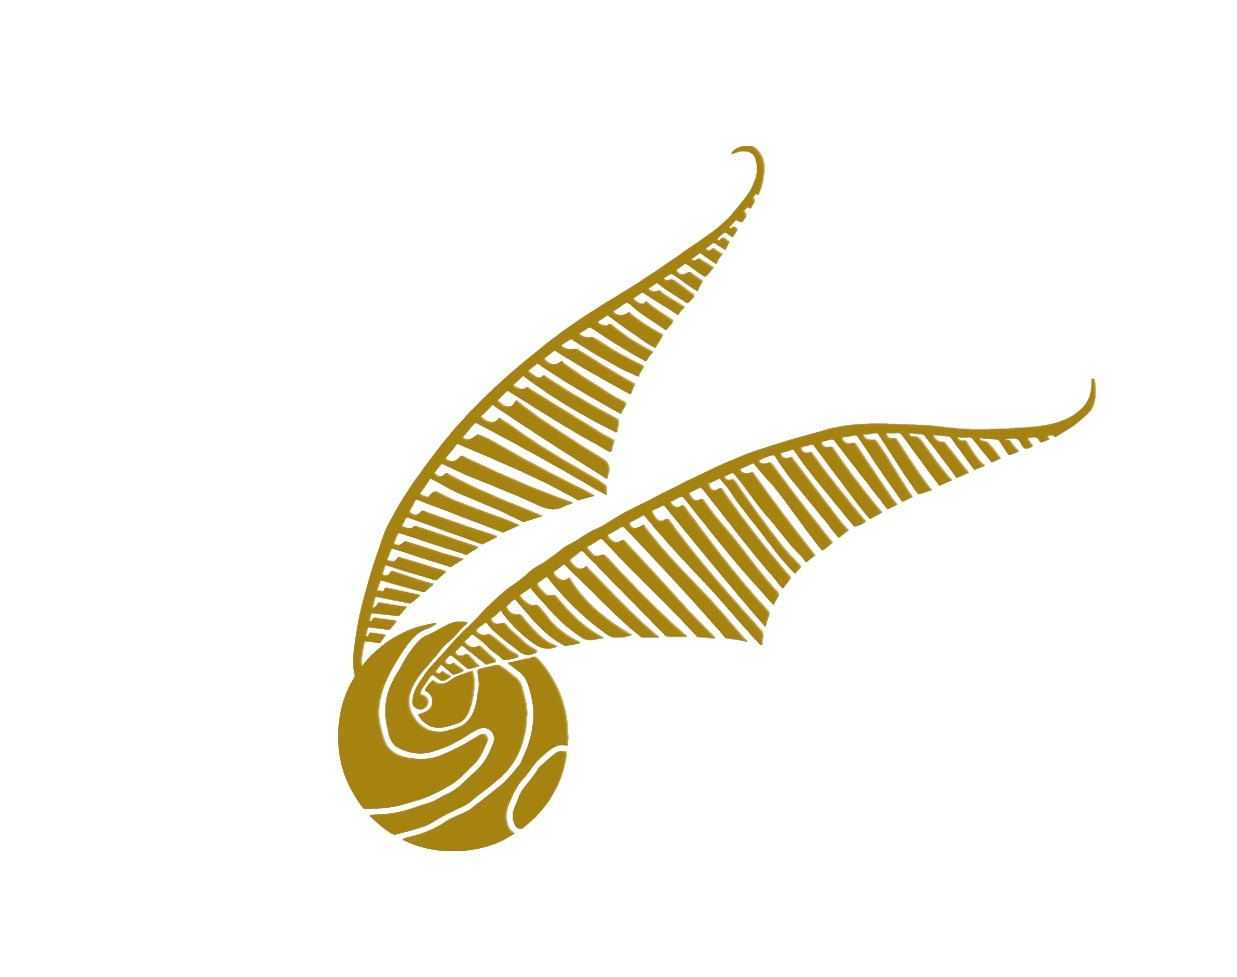 Snitch Png - Golden Snitch Png (100+ images in Collection) Page 2